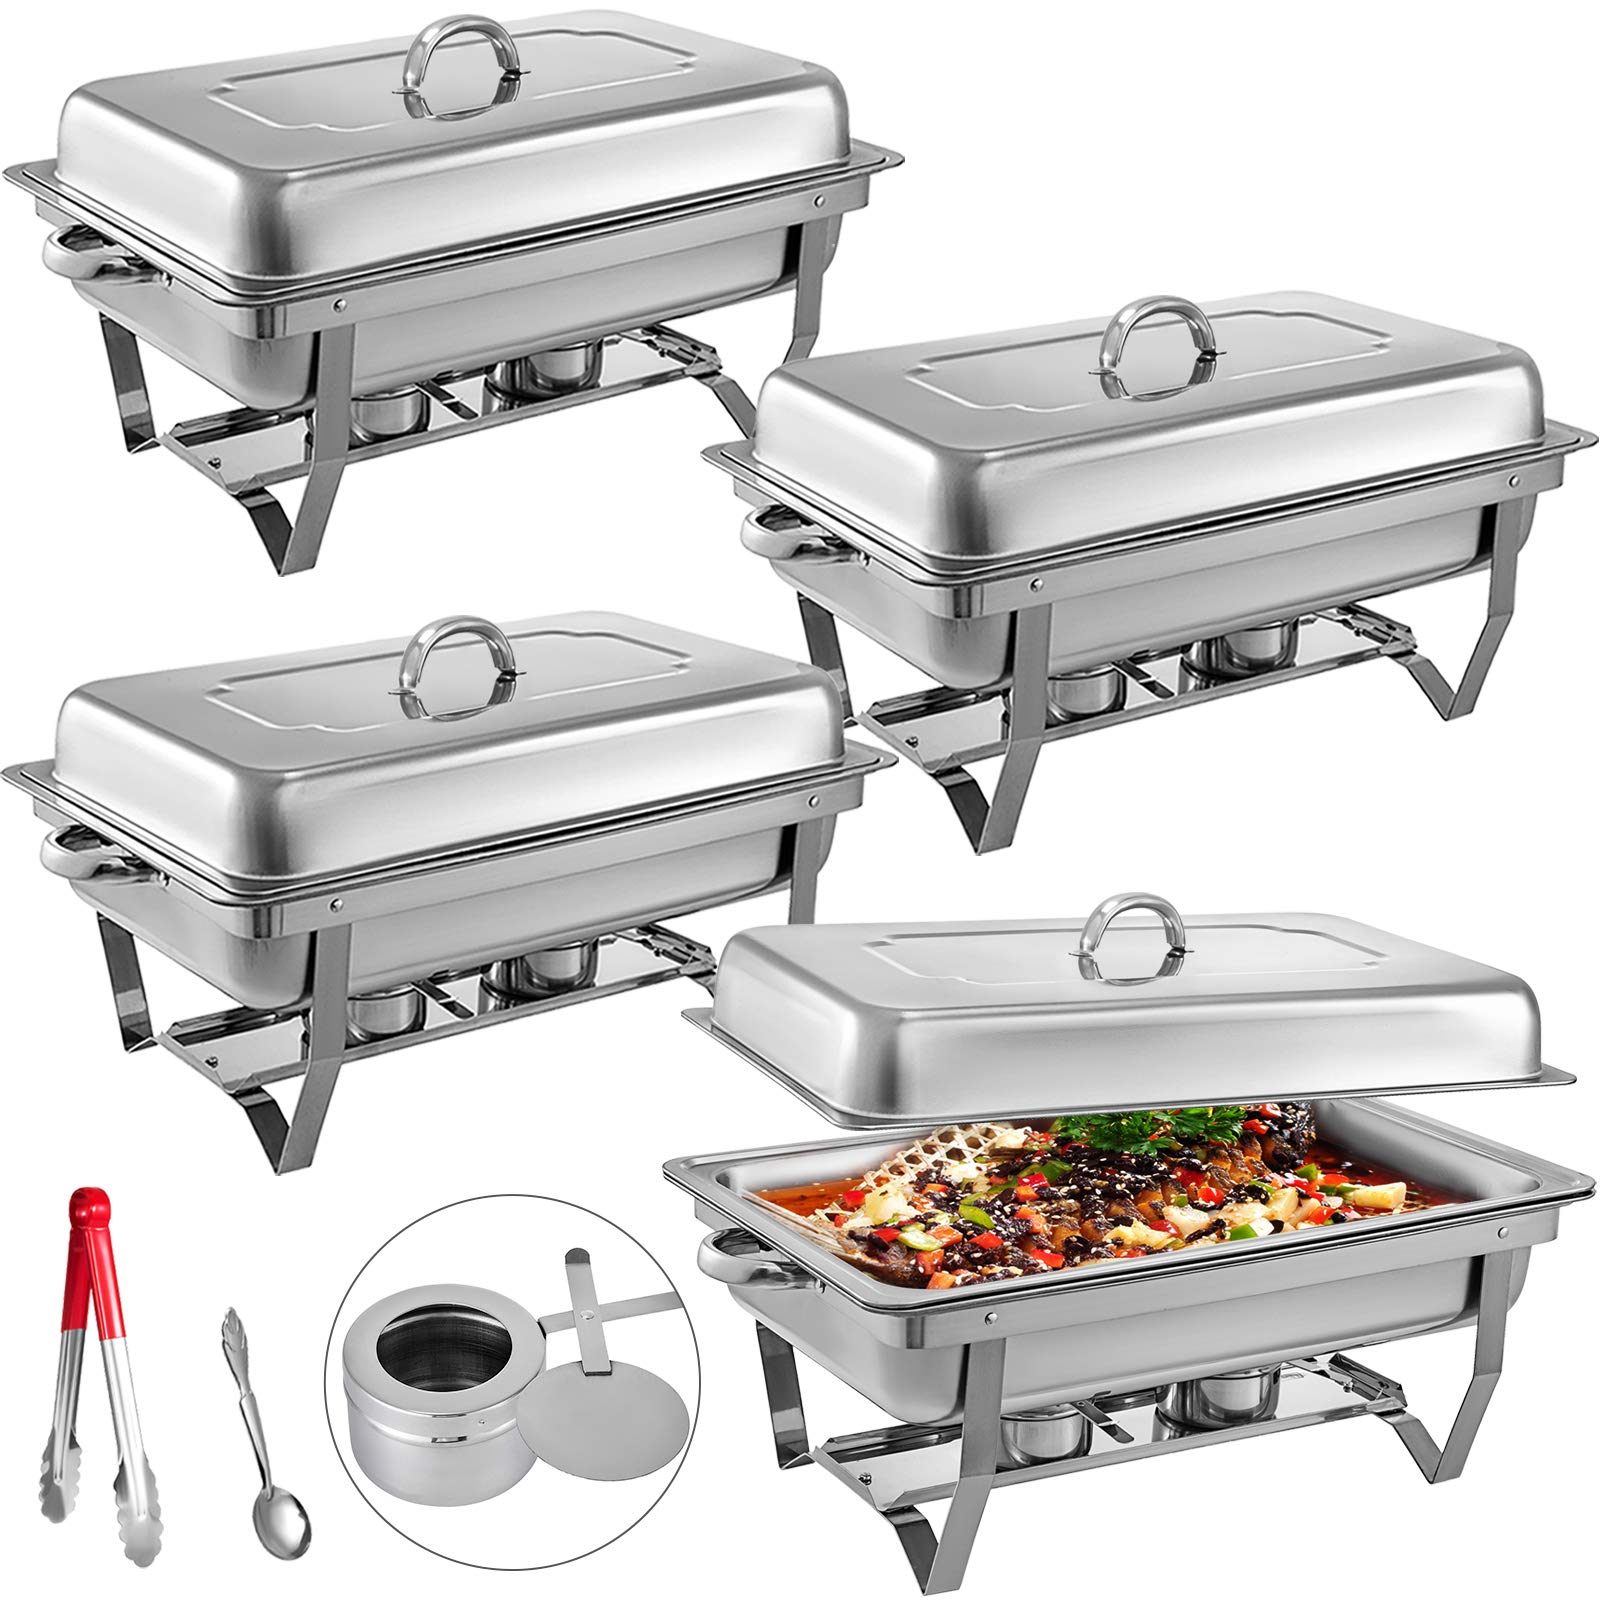 Mophorn Chafing Dish 4 Packs 8 Quart Stainless Steel Chafer Full Size Rectangular Chafers for Catering Buffet Warmer Set with Folding Frame by Mophorn